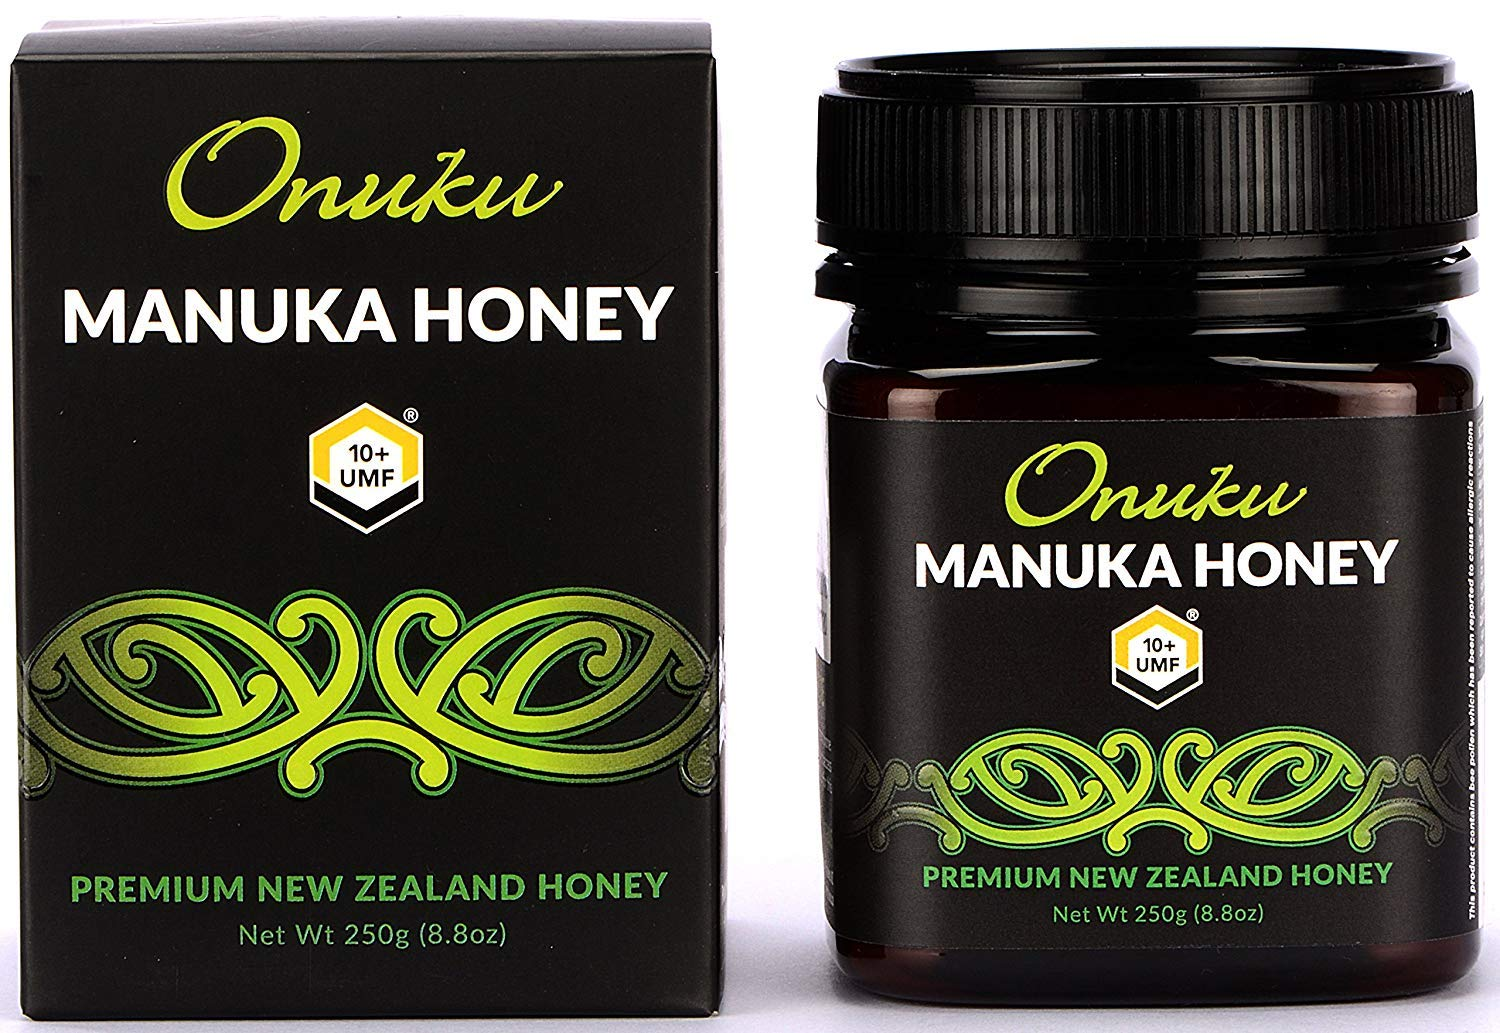 Onuku Manuka Honey Certified 10+ UMF (MGO 264+), New Zealand, 250g (8.8oz)